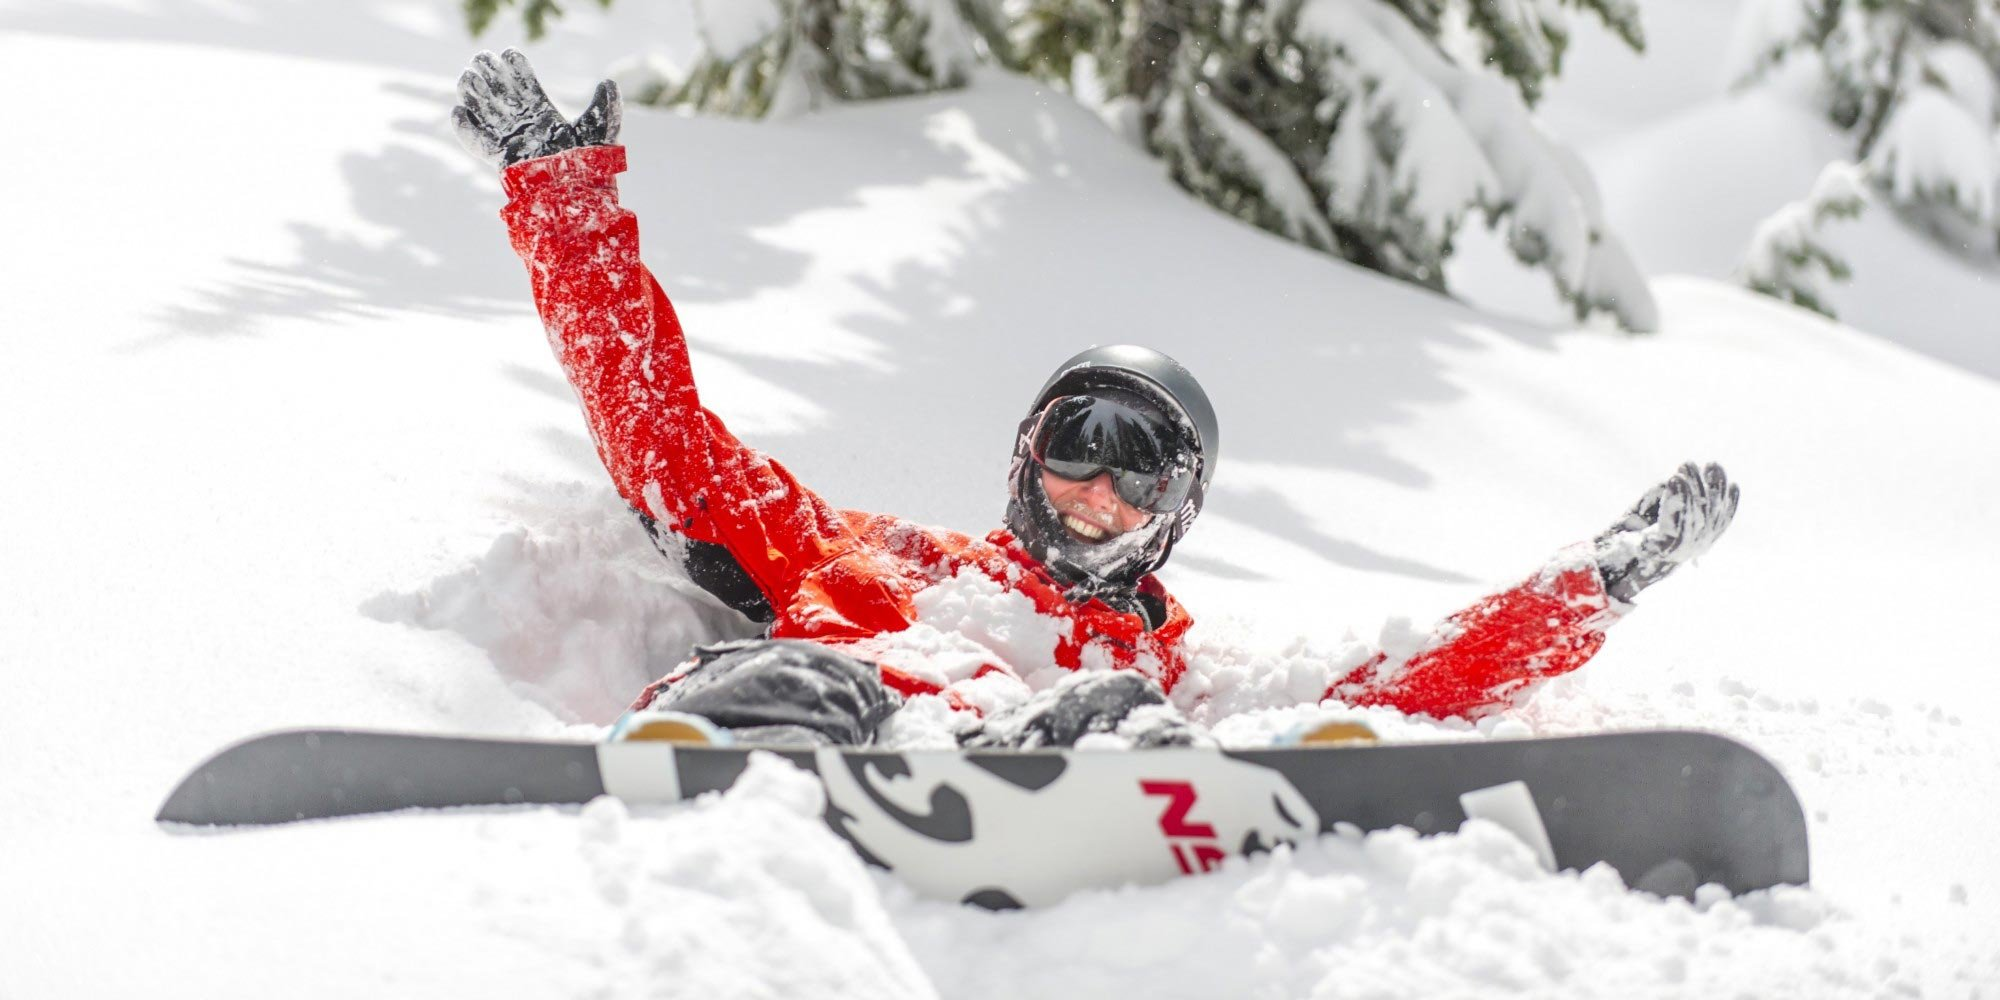 Snowboarder-Stuck-In-POW-SM